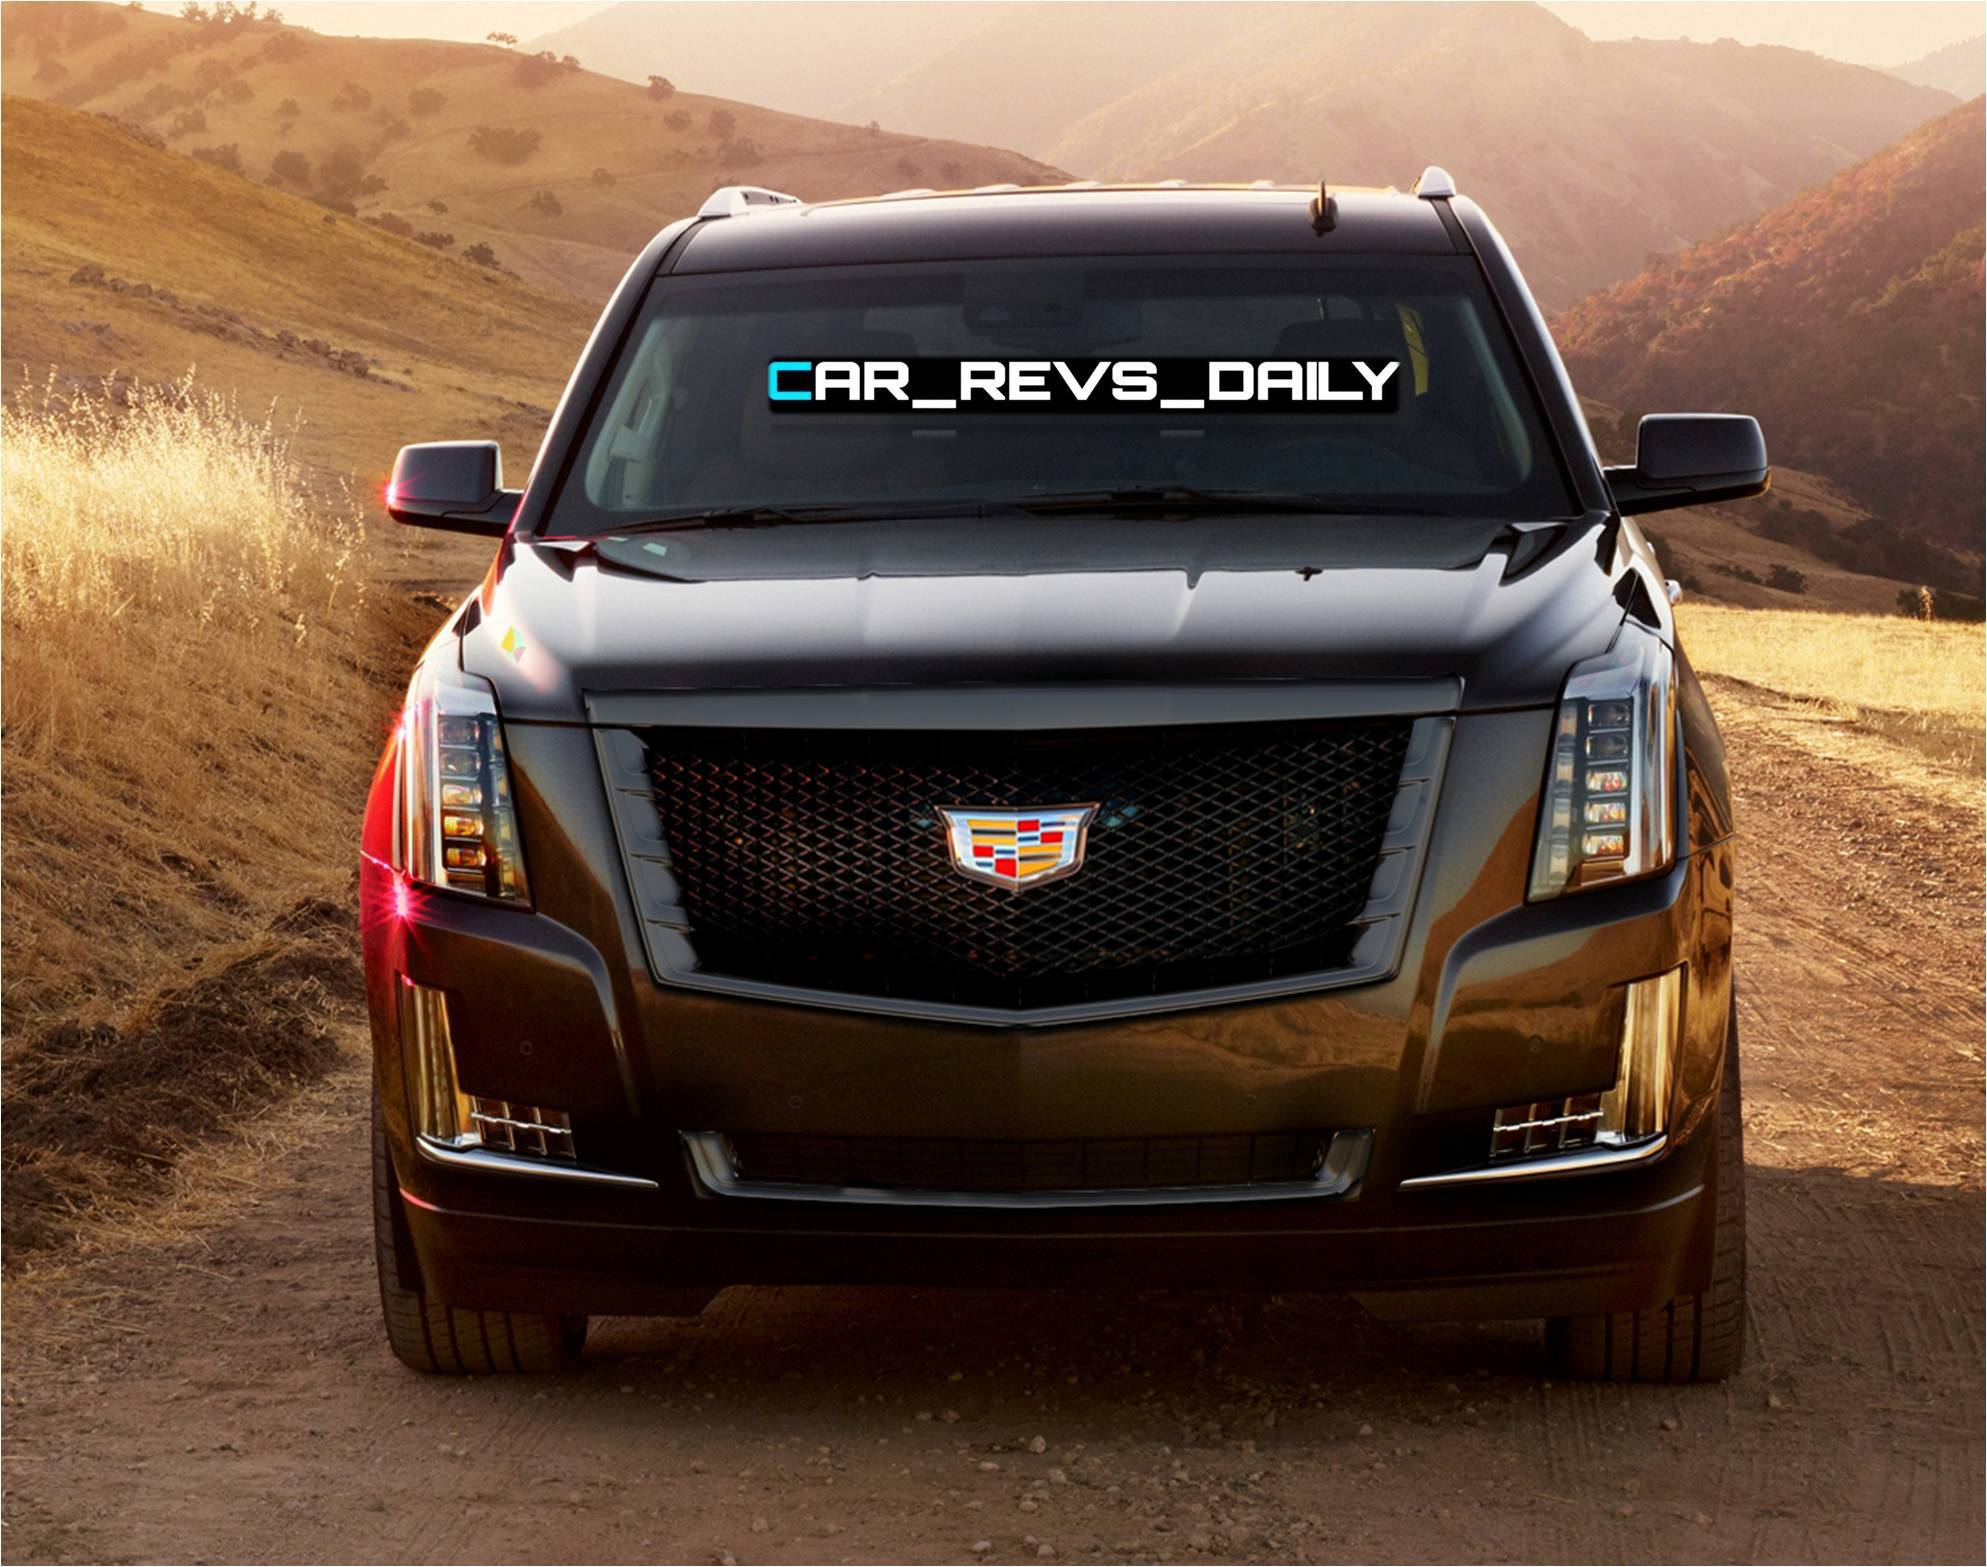 Speculative Renderings 2016 Cadillac Escalade V How Does 650HP